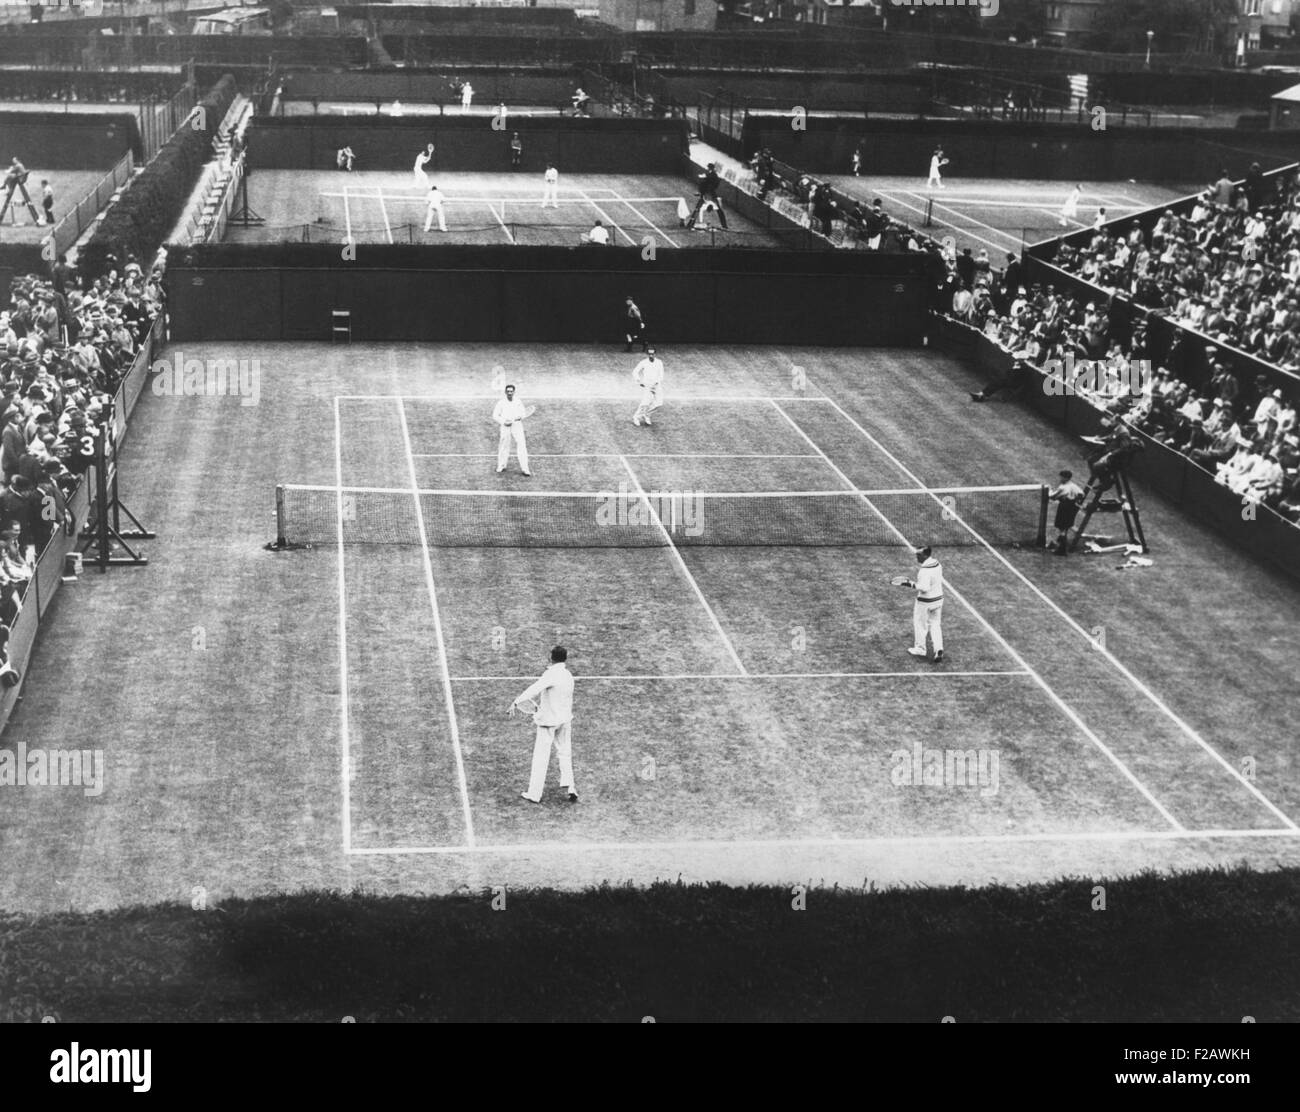 English lawn tennis championship play at Wimbledon, July 2, 1930. In closest court, a double matches was played - Stock Image